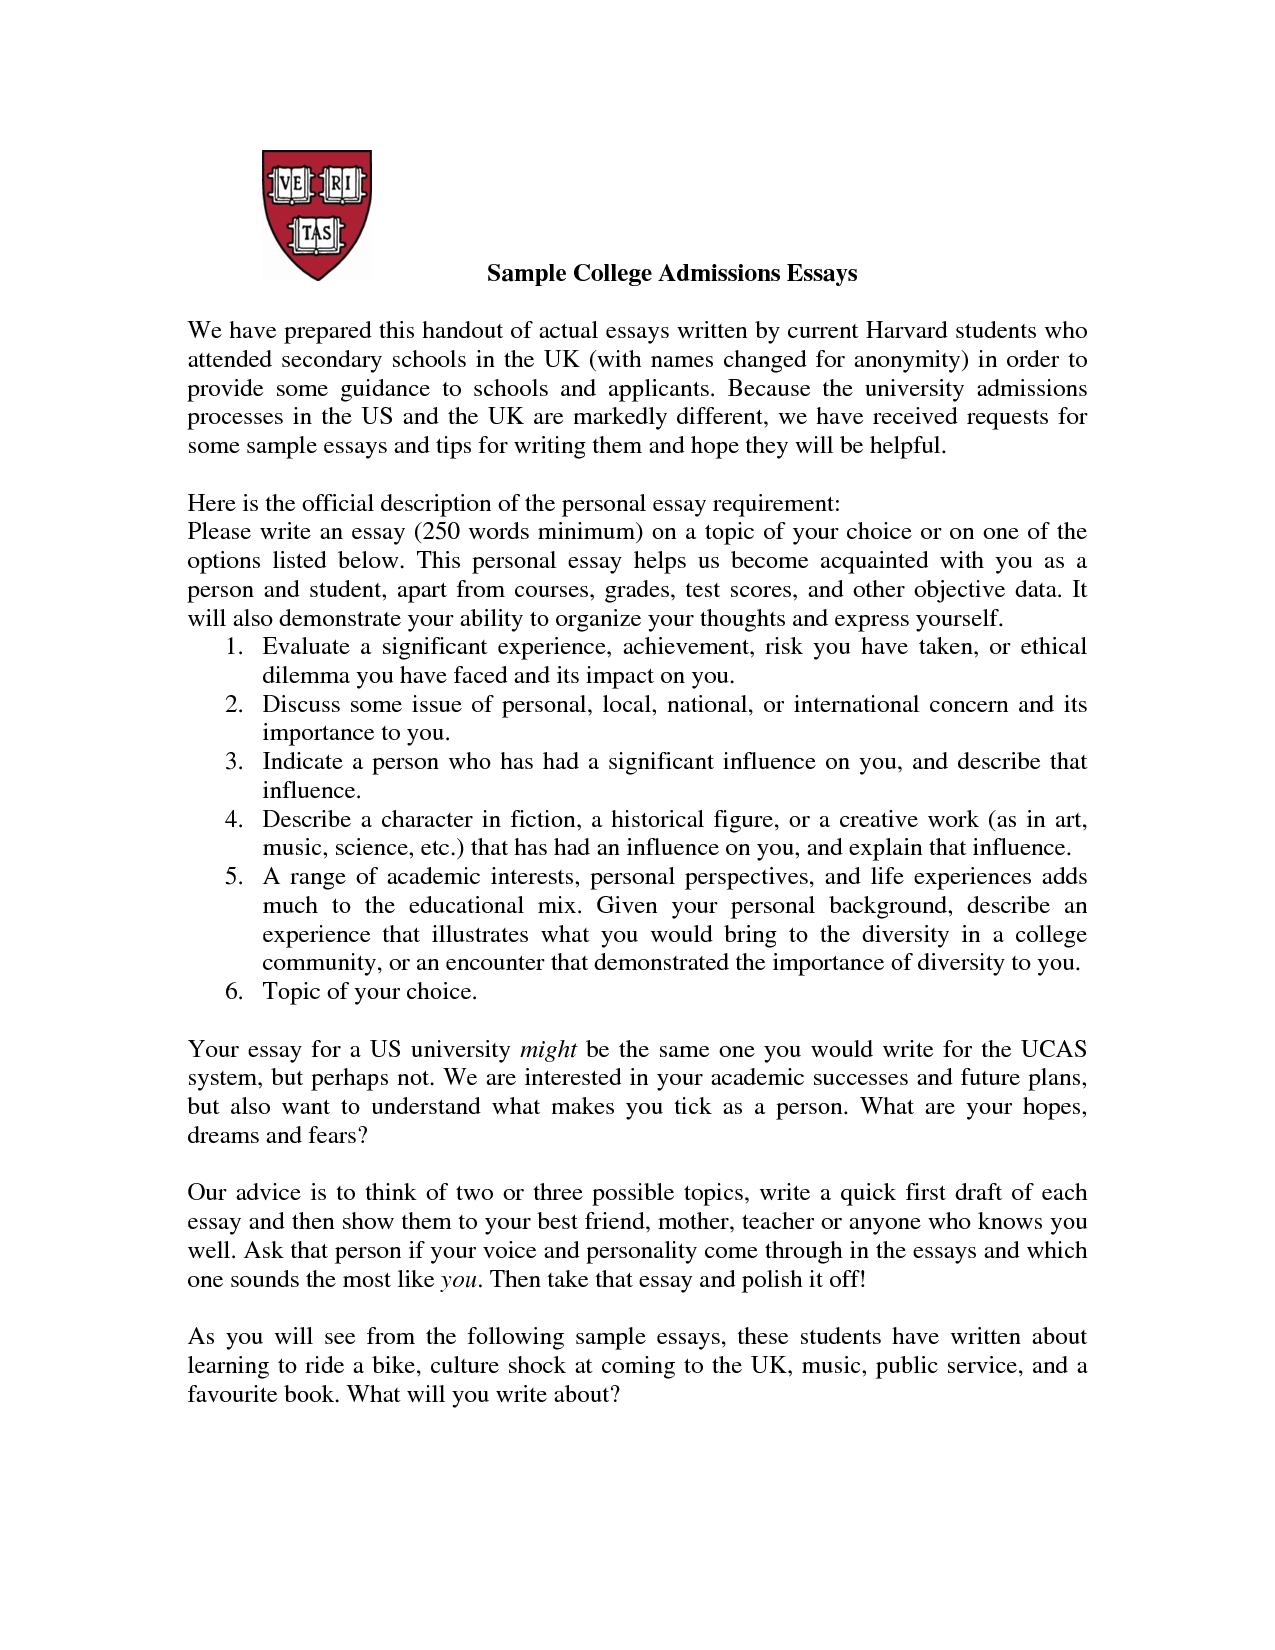 001 Essay Example 1545068929 College Application Writing Help Marvelous Essays Tips For Level Admission Sample Guide To